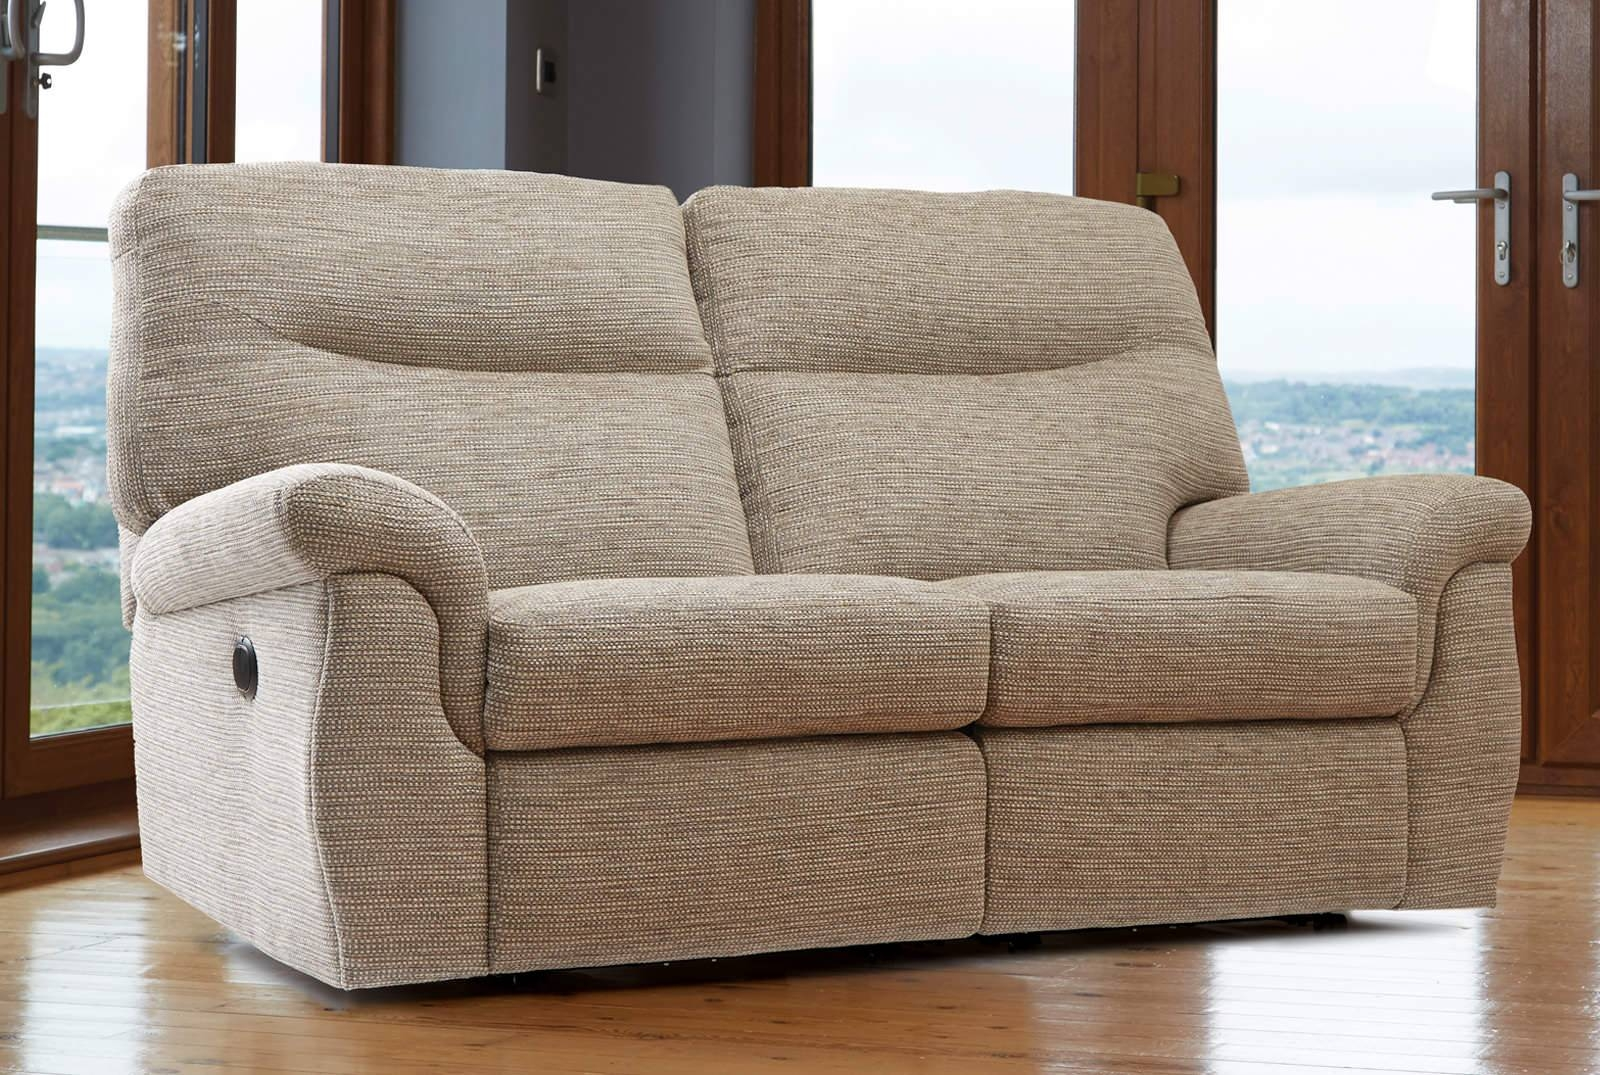 Sofas Center : Unusual Two Seater Recliner Sofa Picture Concept for Unusual Sofa (Image 16 of 23)